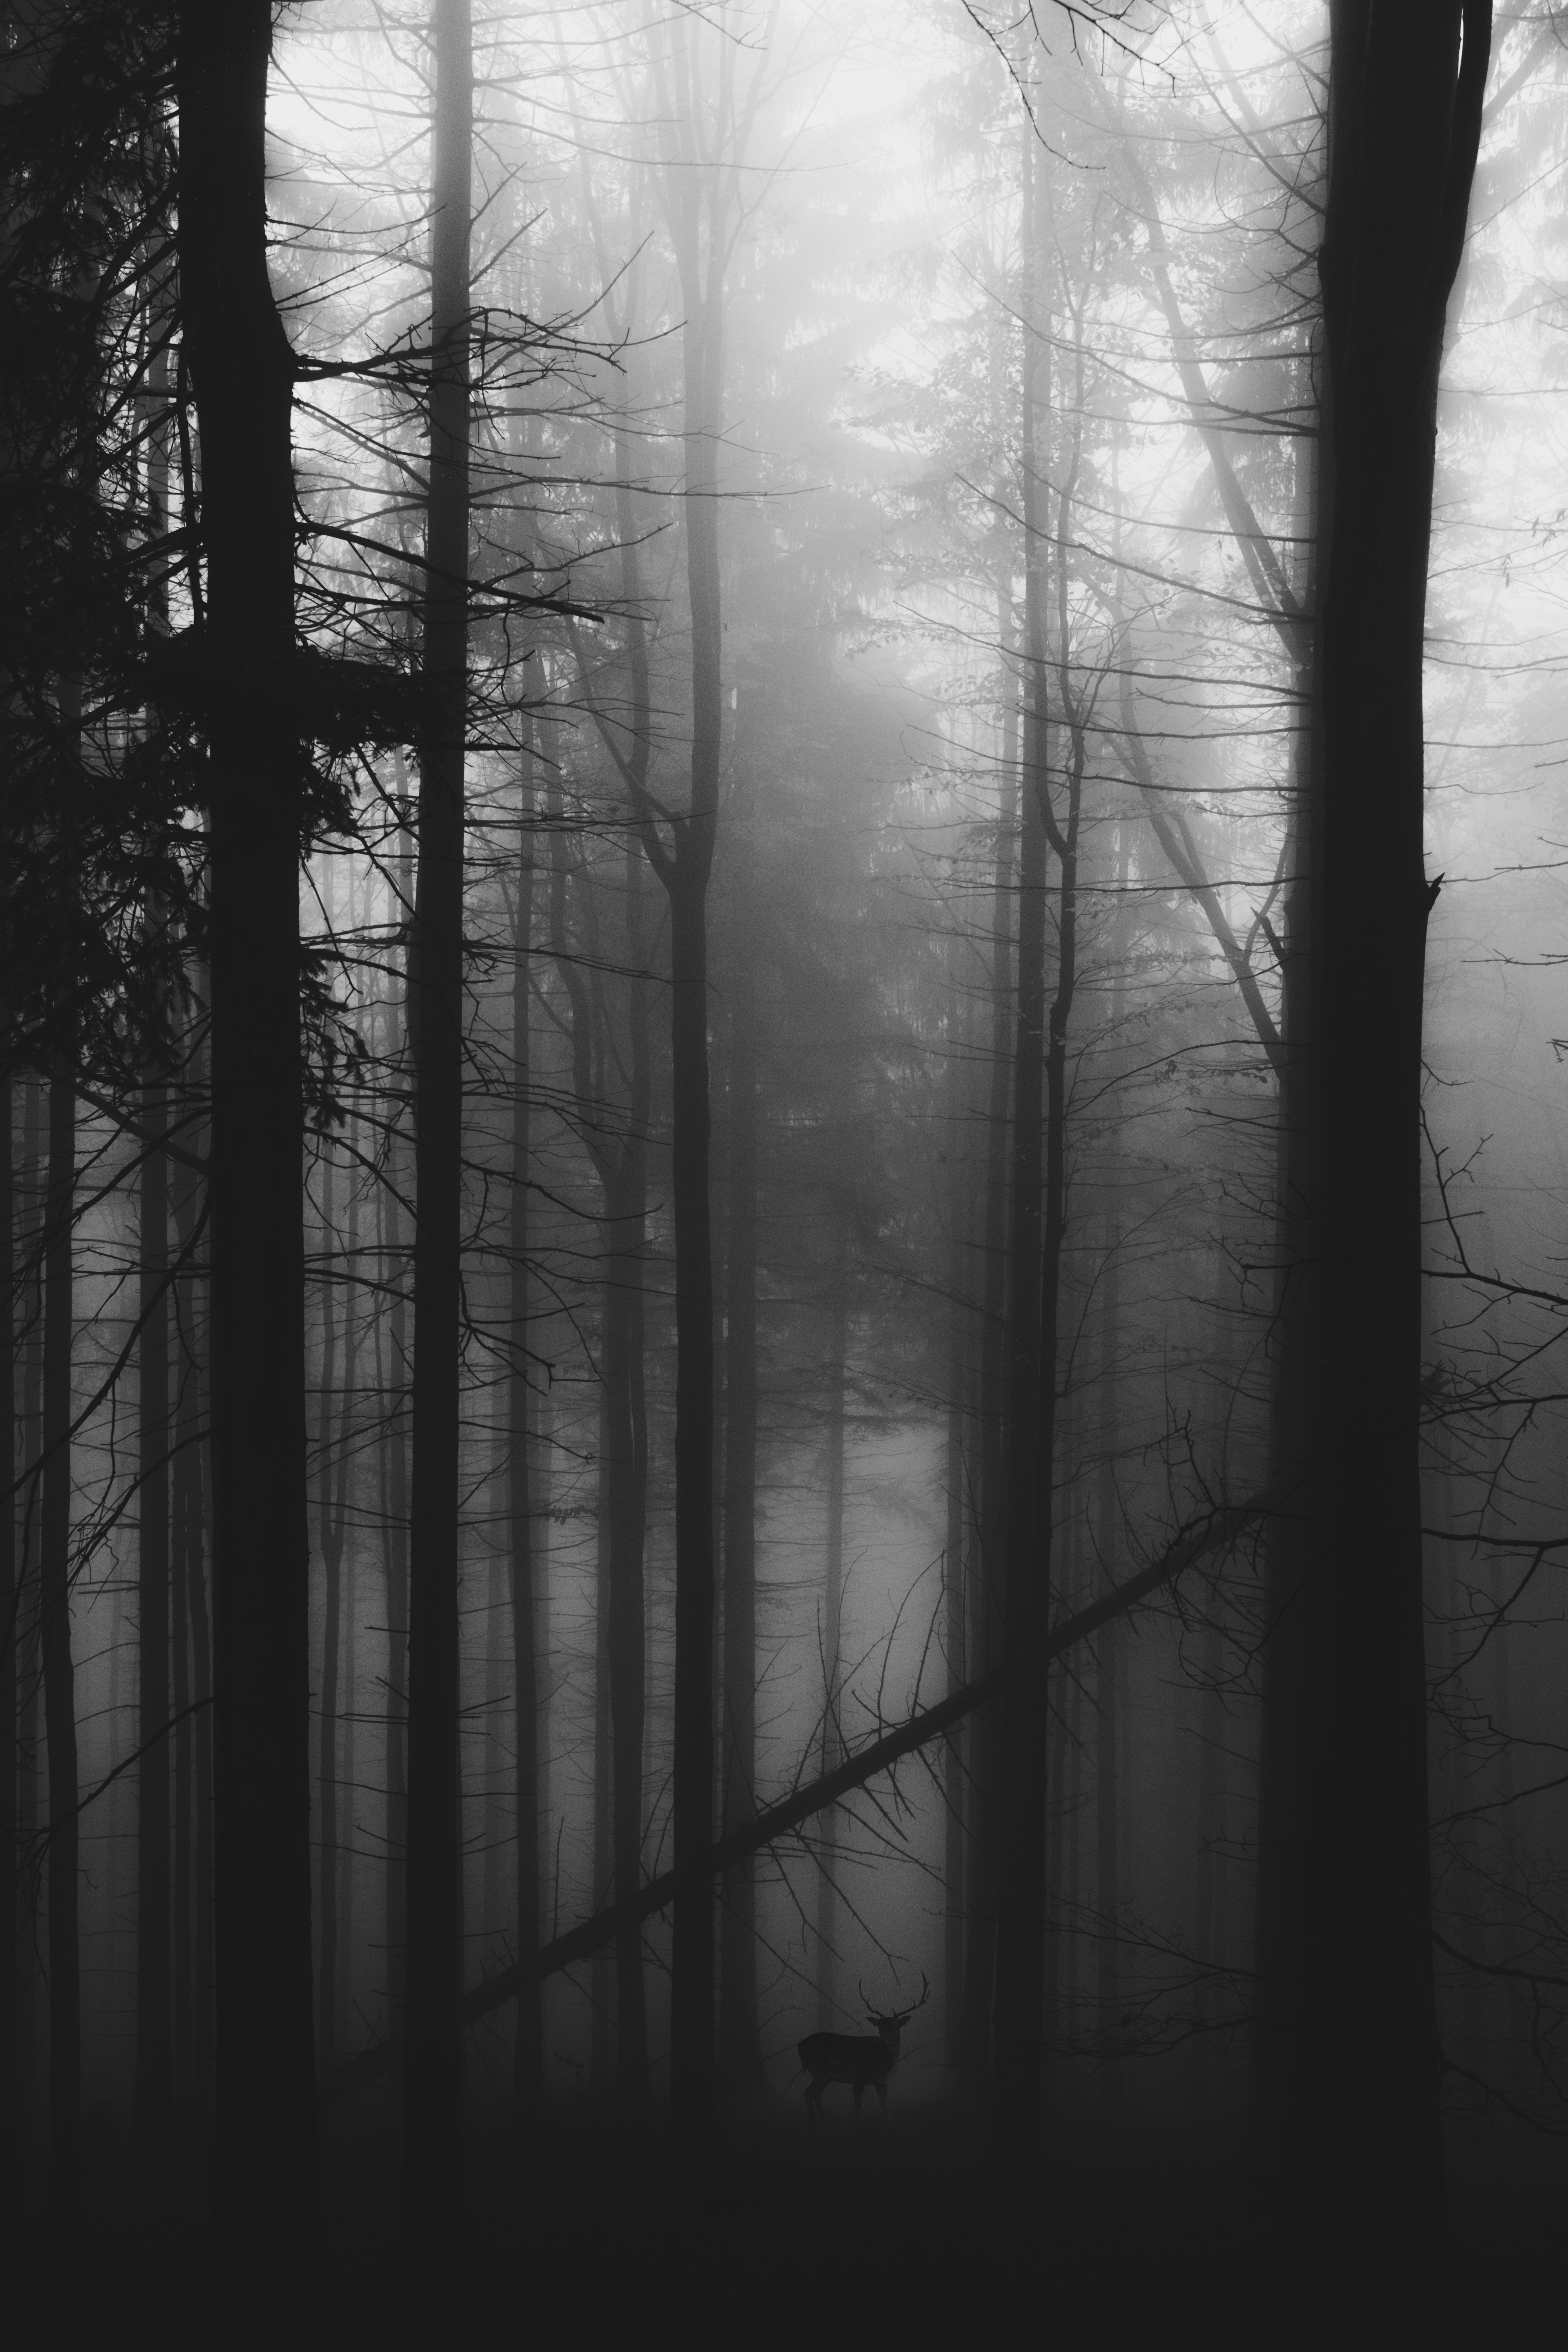 53849 download wallpaper Forest, Fog, Bw, Chb, Gloomy, Deer screensavers and pictures for free